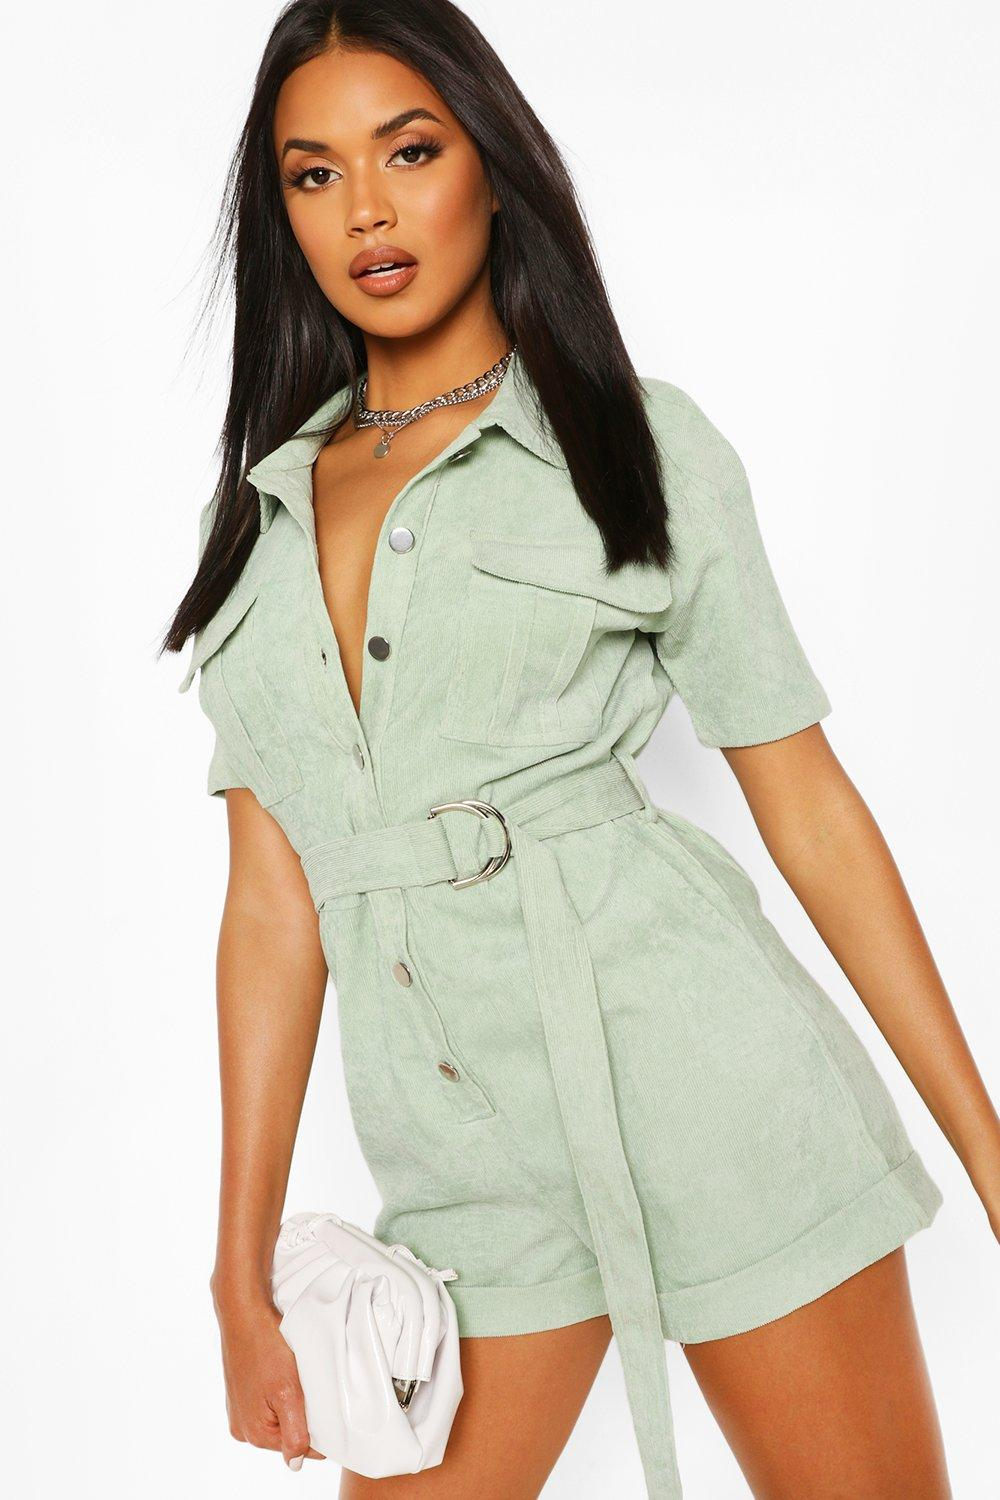 70s Clothes | Hippie Clothes & Outfits Womens Cord Utility Romper - Green - 12 $18.00 AT vintagedancer.com